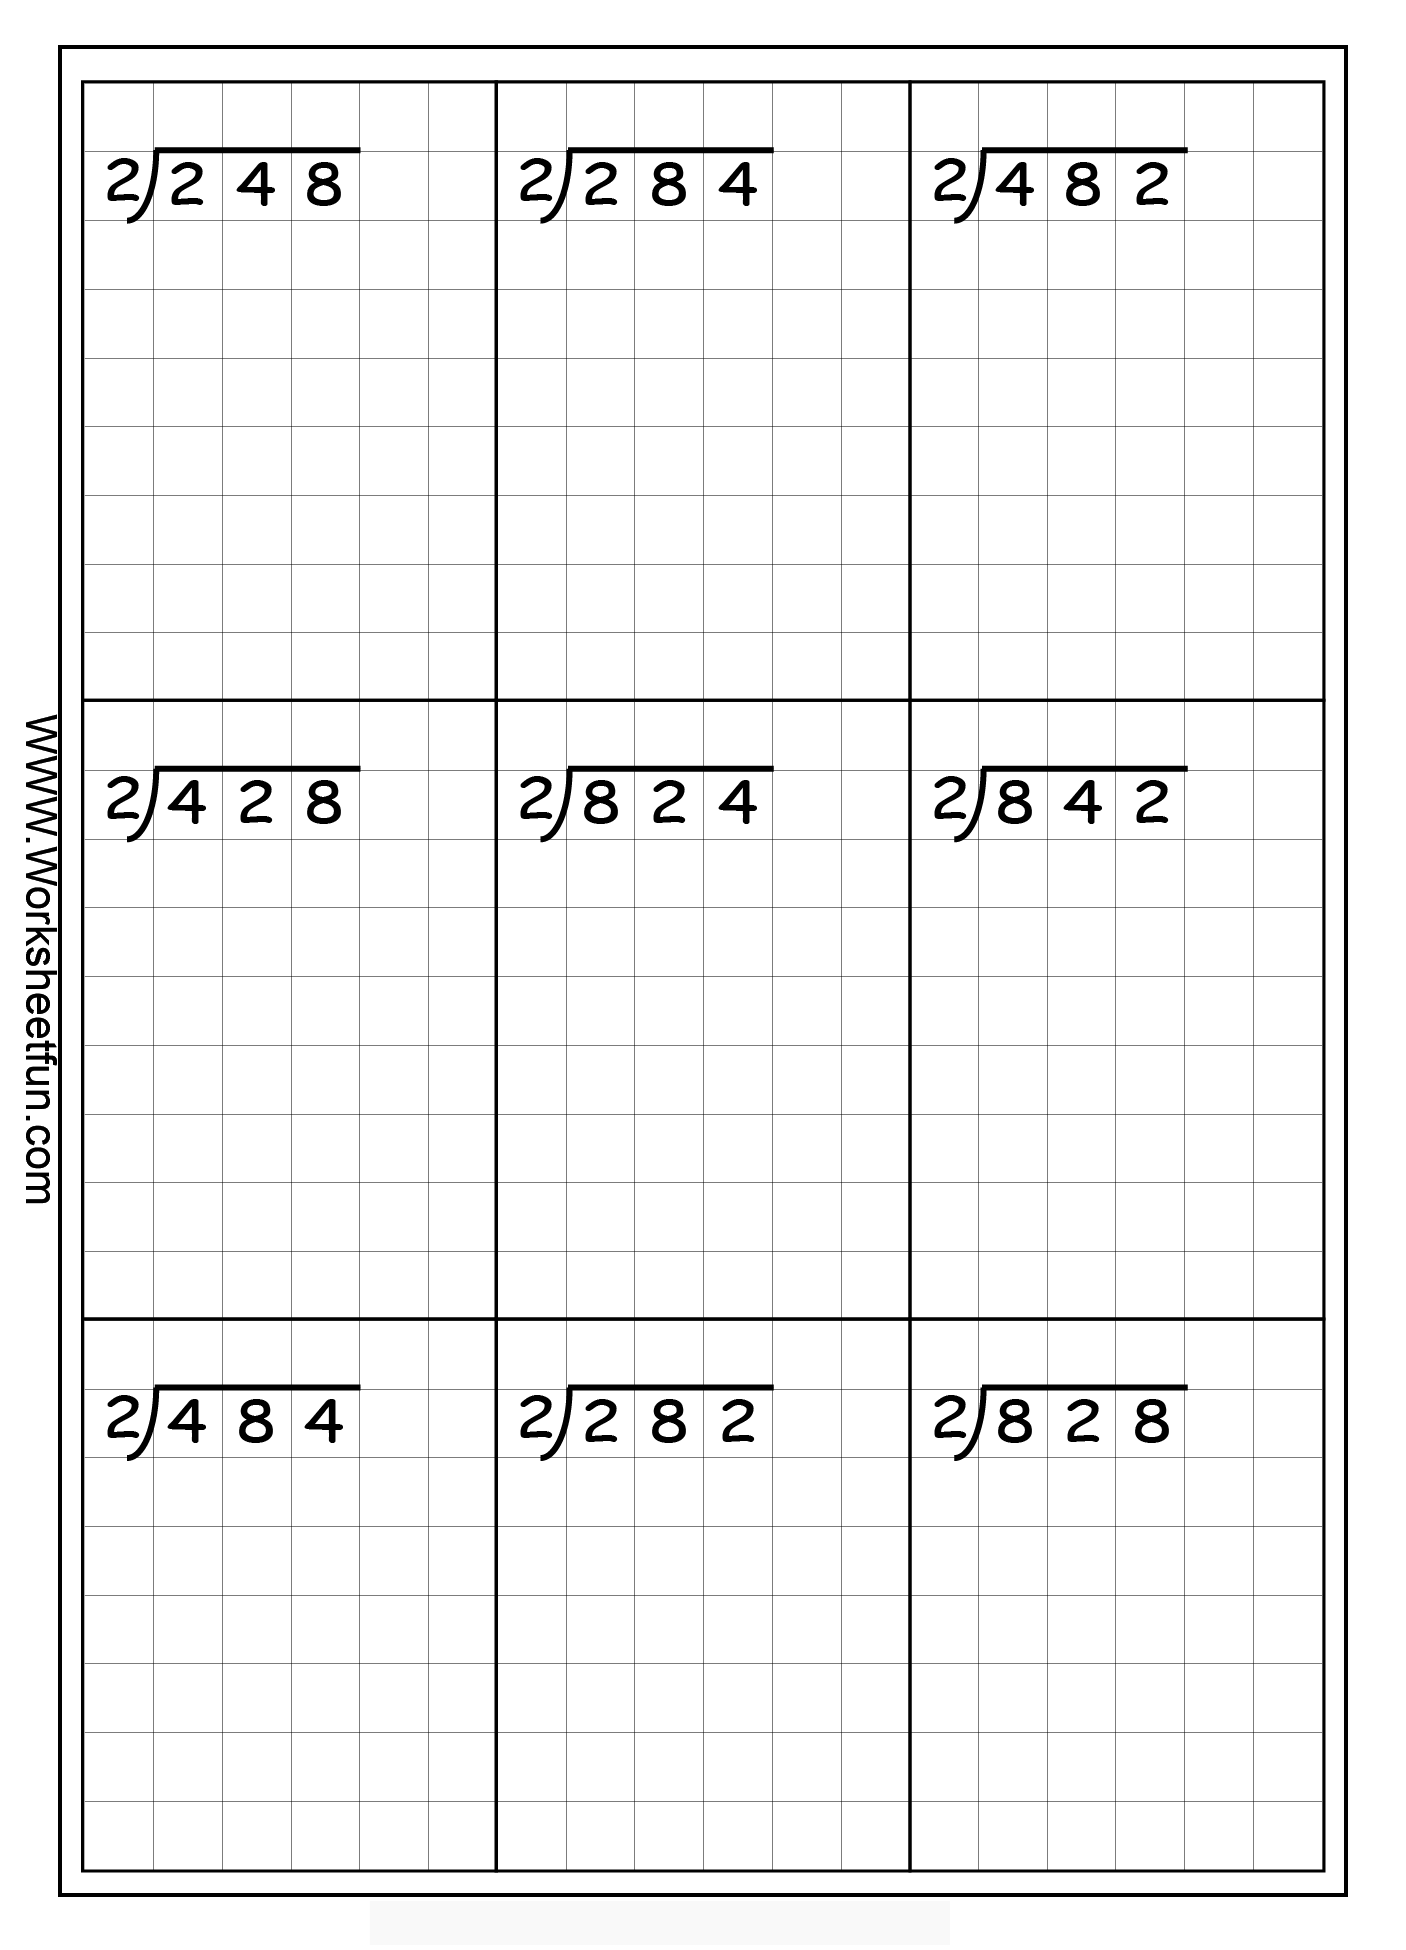 Dmsb Long Division With Remainders Worksheet